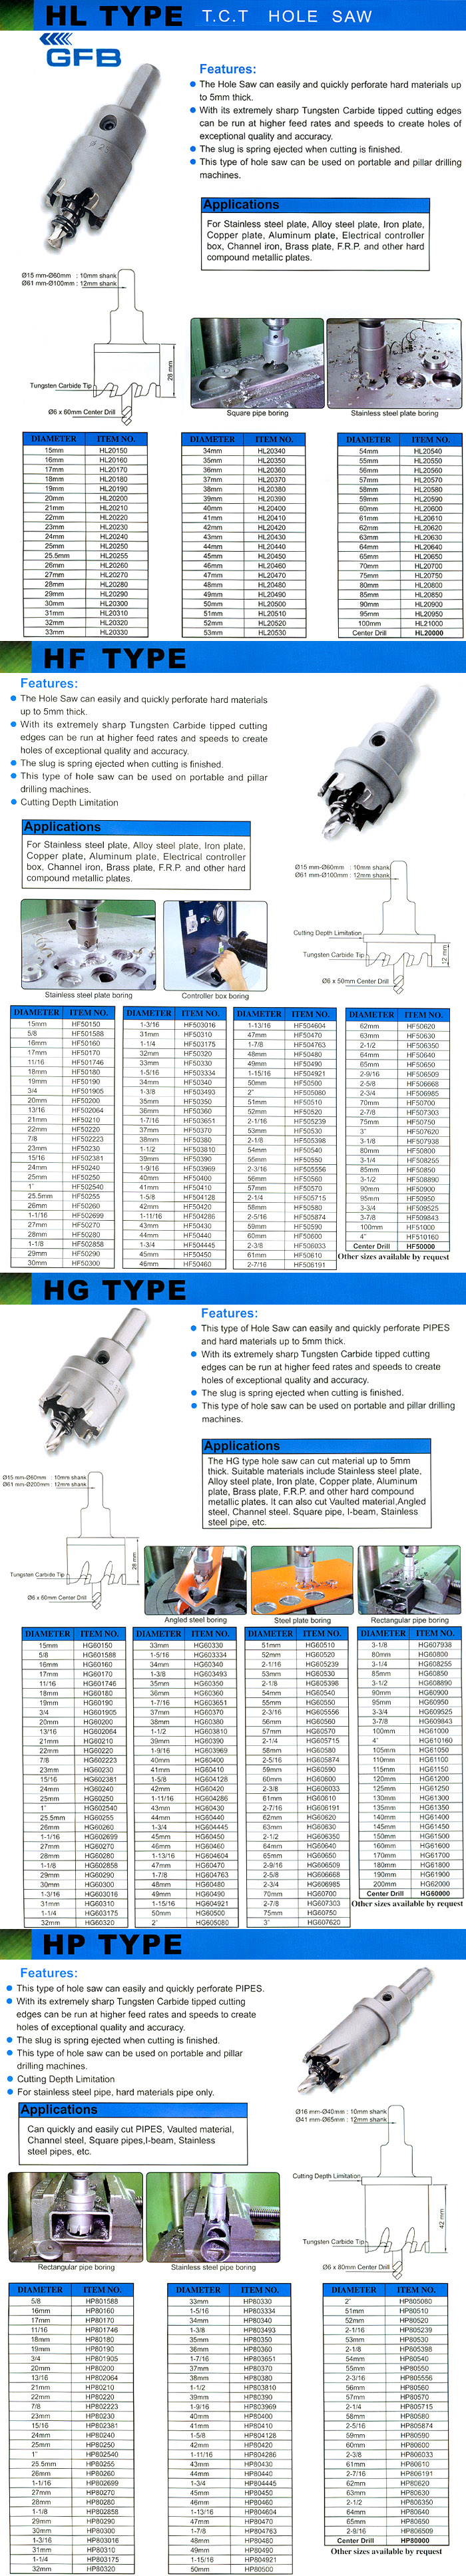 T.C.T. Hole Saw Type HL, HF, HG, HP